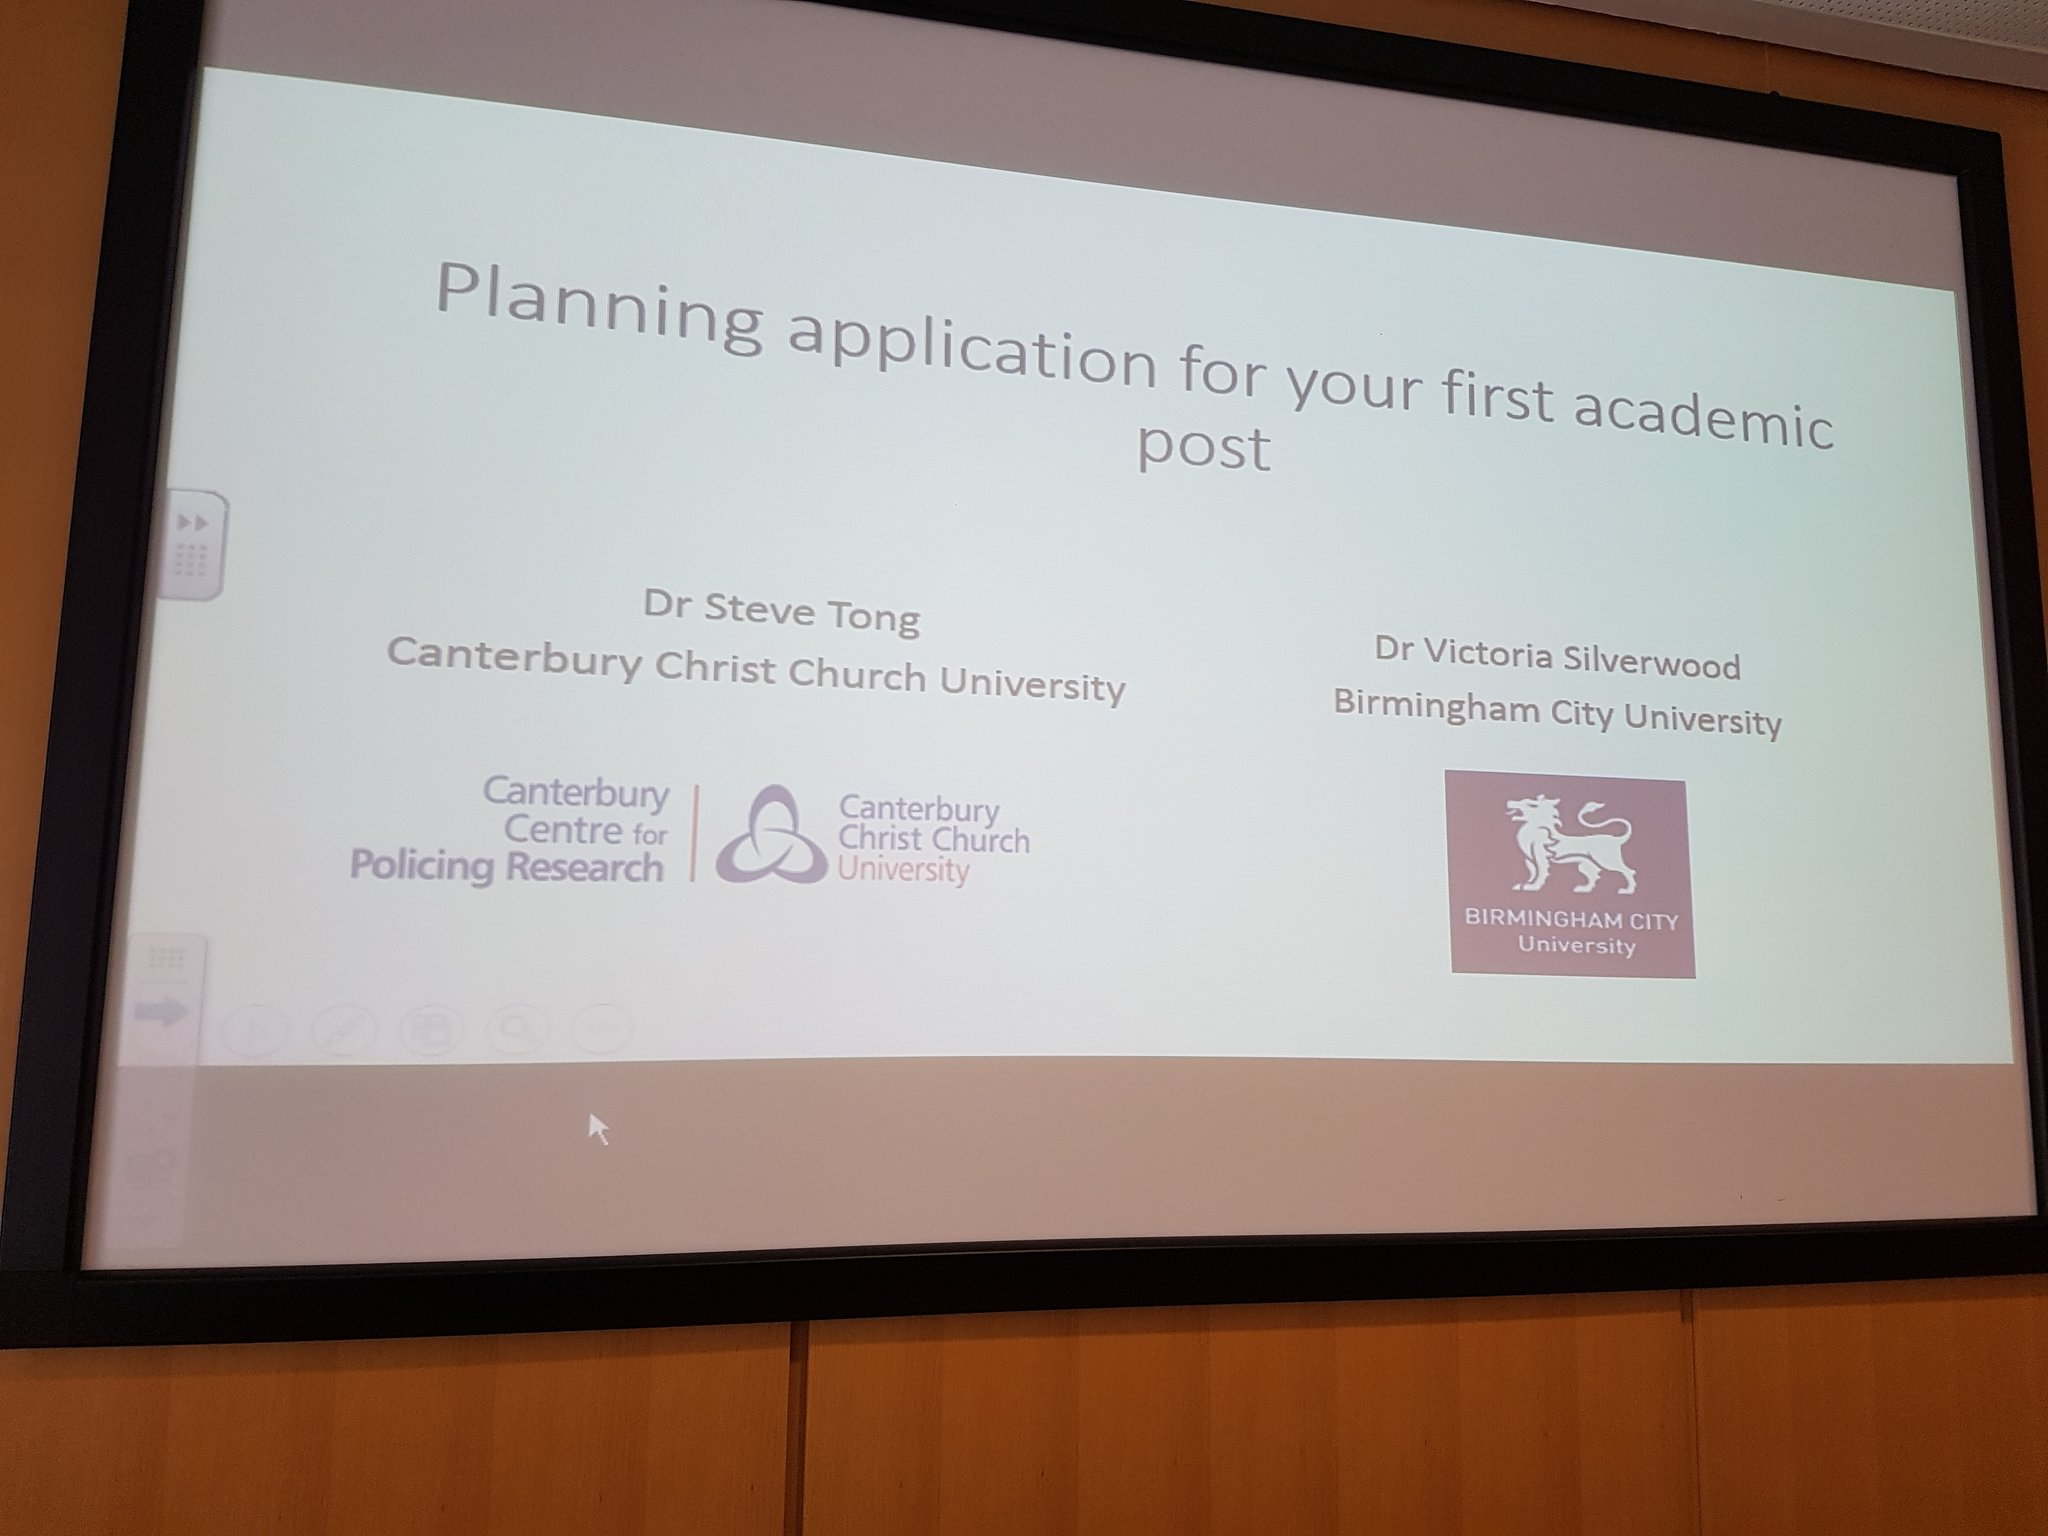 #BSCConf16  Ready for @BSCPG1 session on applying for 1st academic post with @SteveTongCCCU @SilverwoodVS Kilpin L2. https://t.co/m48pwmDaJp